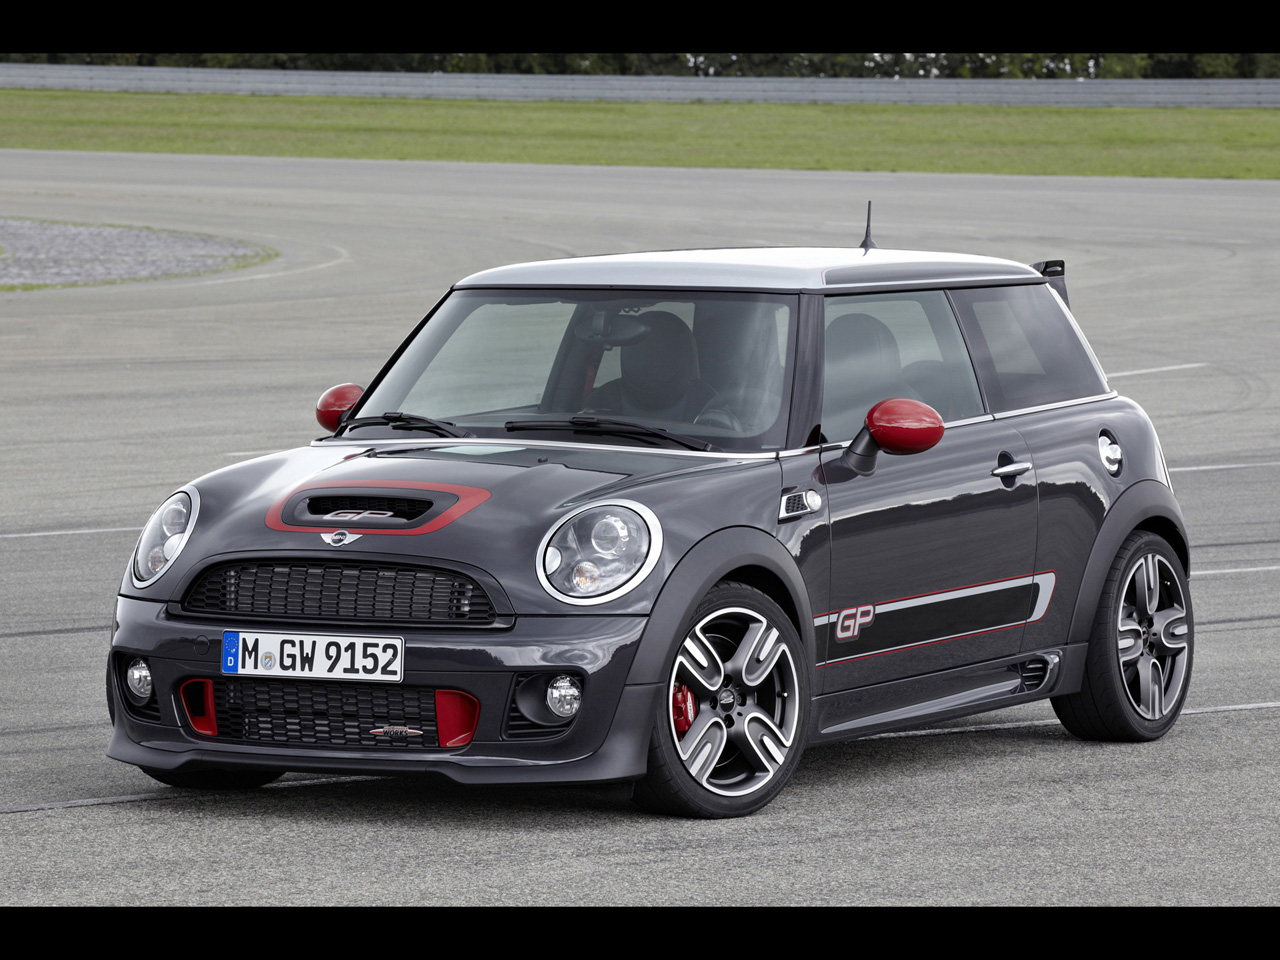 2013 cool car mini john cooper works gp hd wallpapers cartestimony. Black Bedroom Furniture Sets. Home Design Ideas